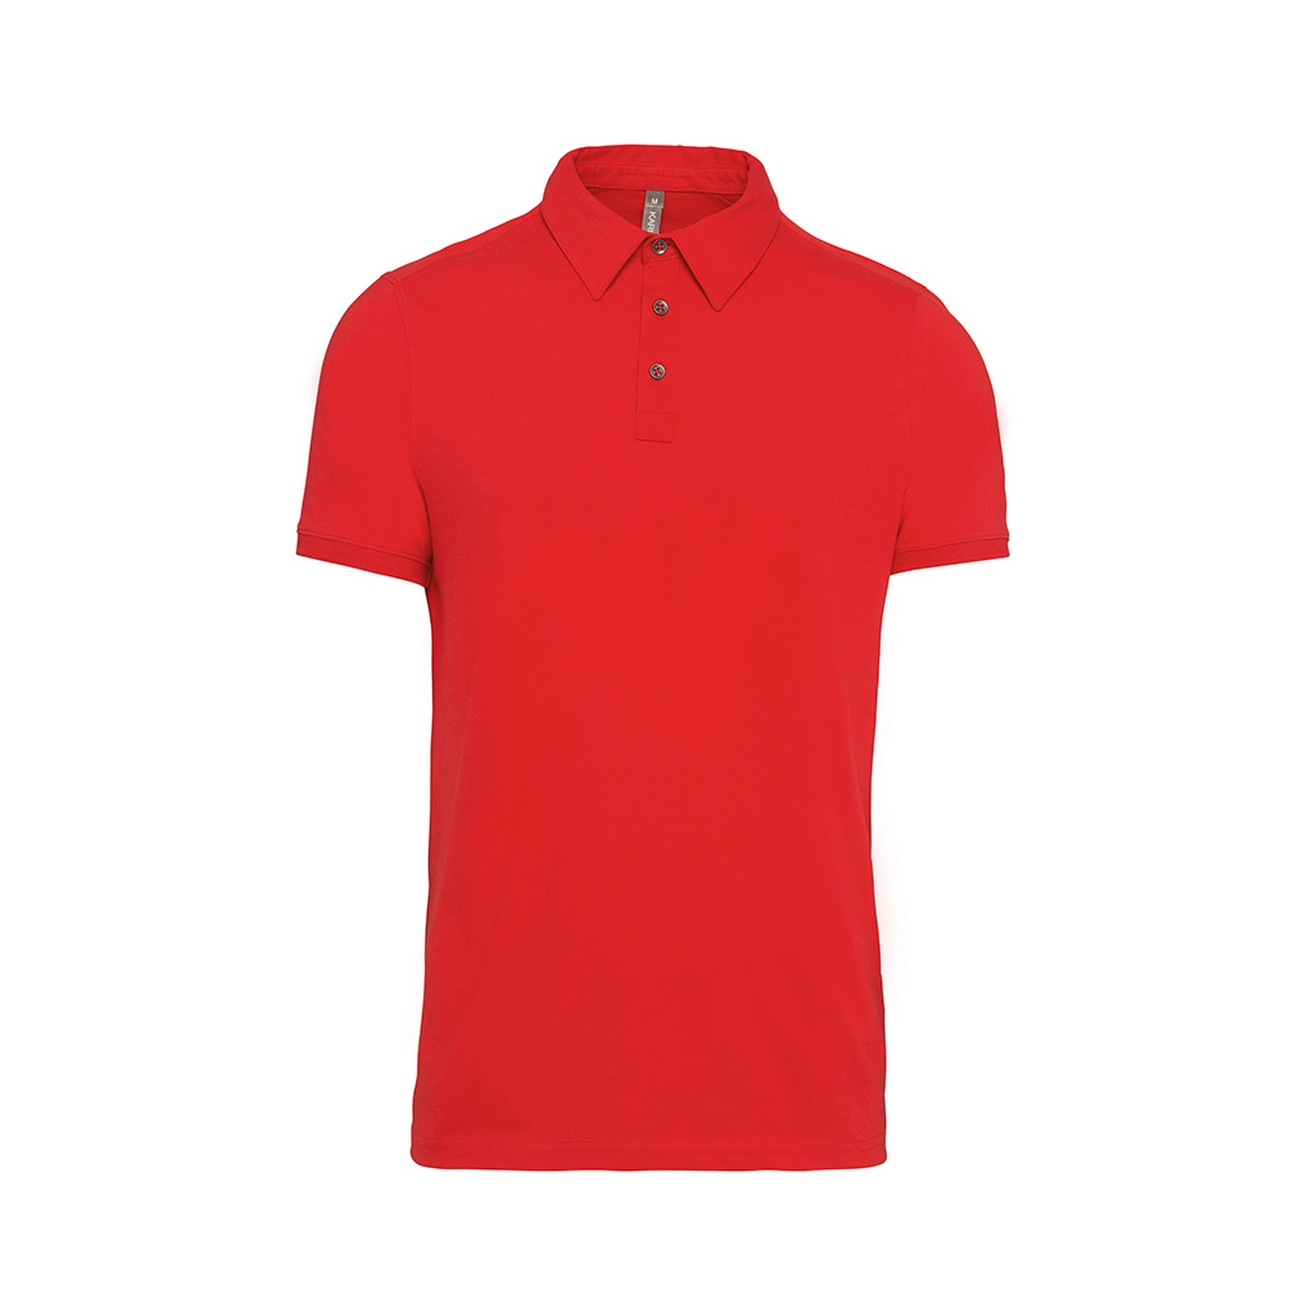 Kariban Mens Jersey Knit Polo Shirt (3XL) (Red)